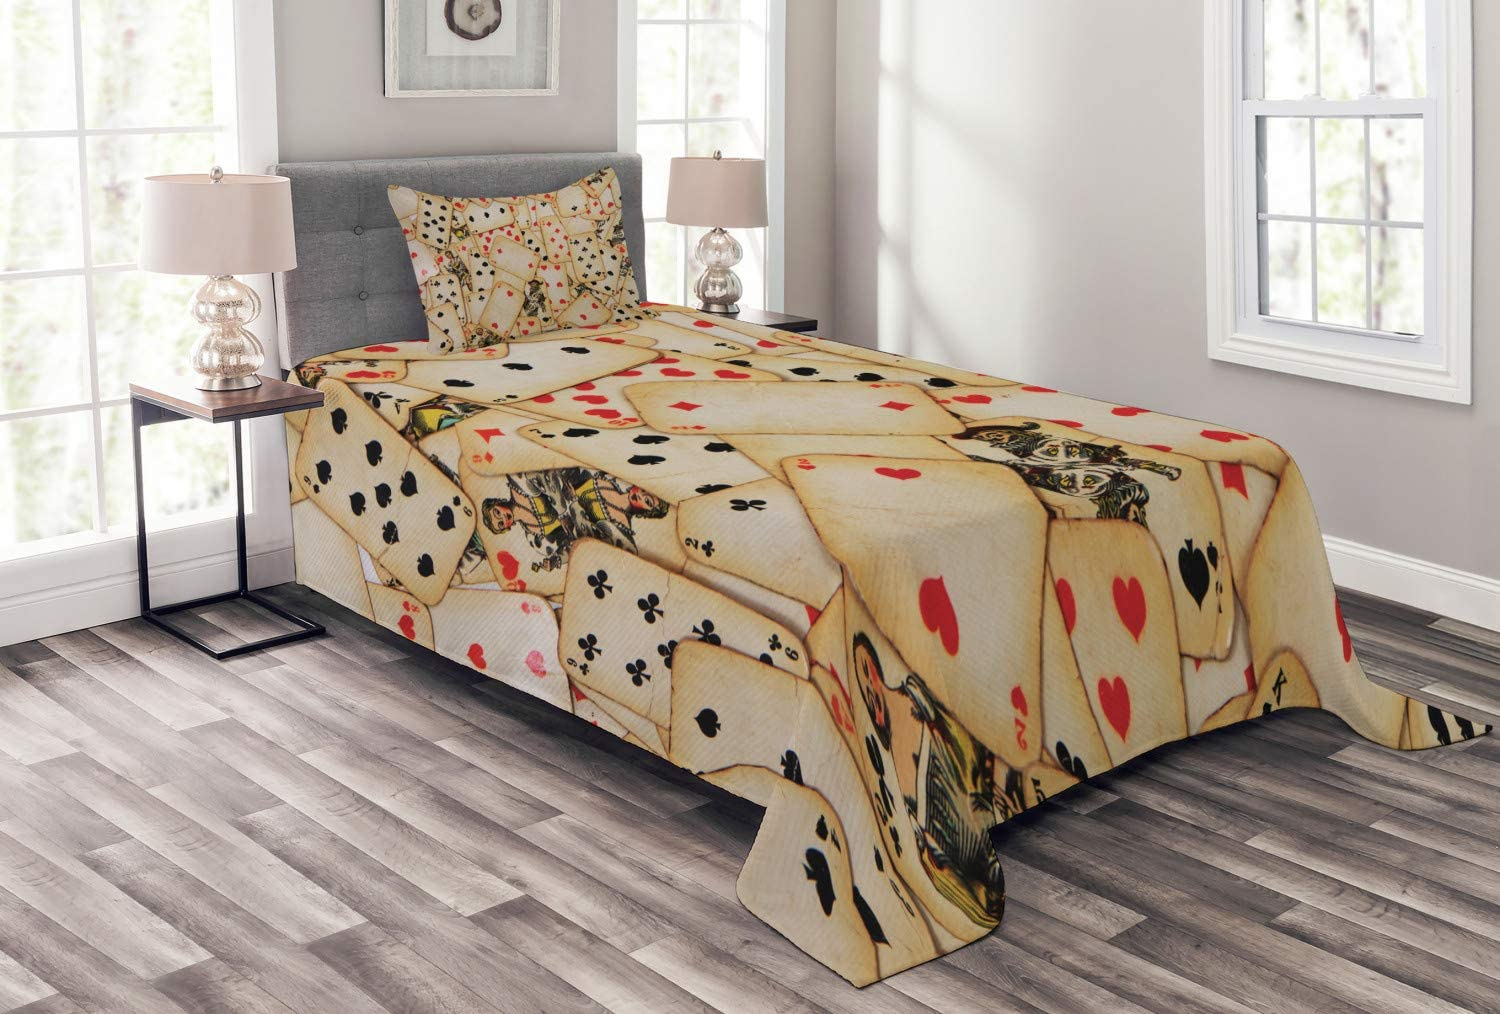 Ambesonne Casino Bedspread, Old Playing Cards Themed Vintage Classic Style Entertaining Wealth Fortune, Decorative Quilted 2 Piece Coverlet Set with Pillow Sham, Twin Size, Beige Black